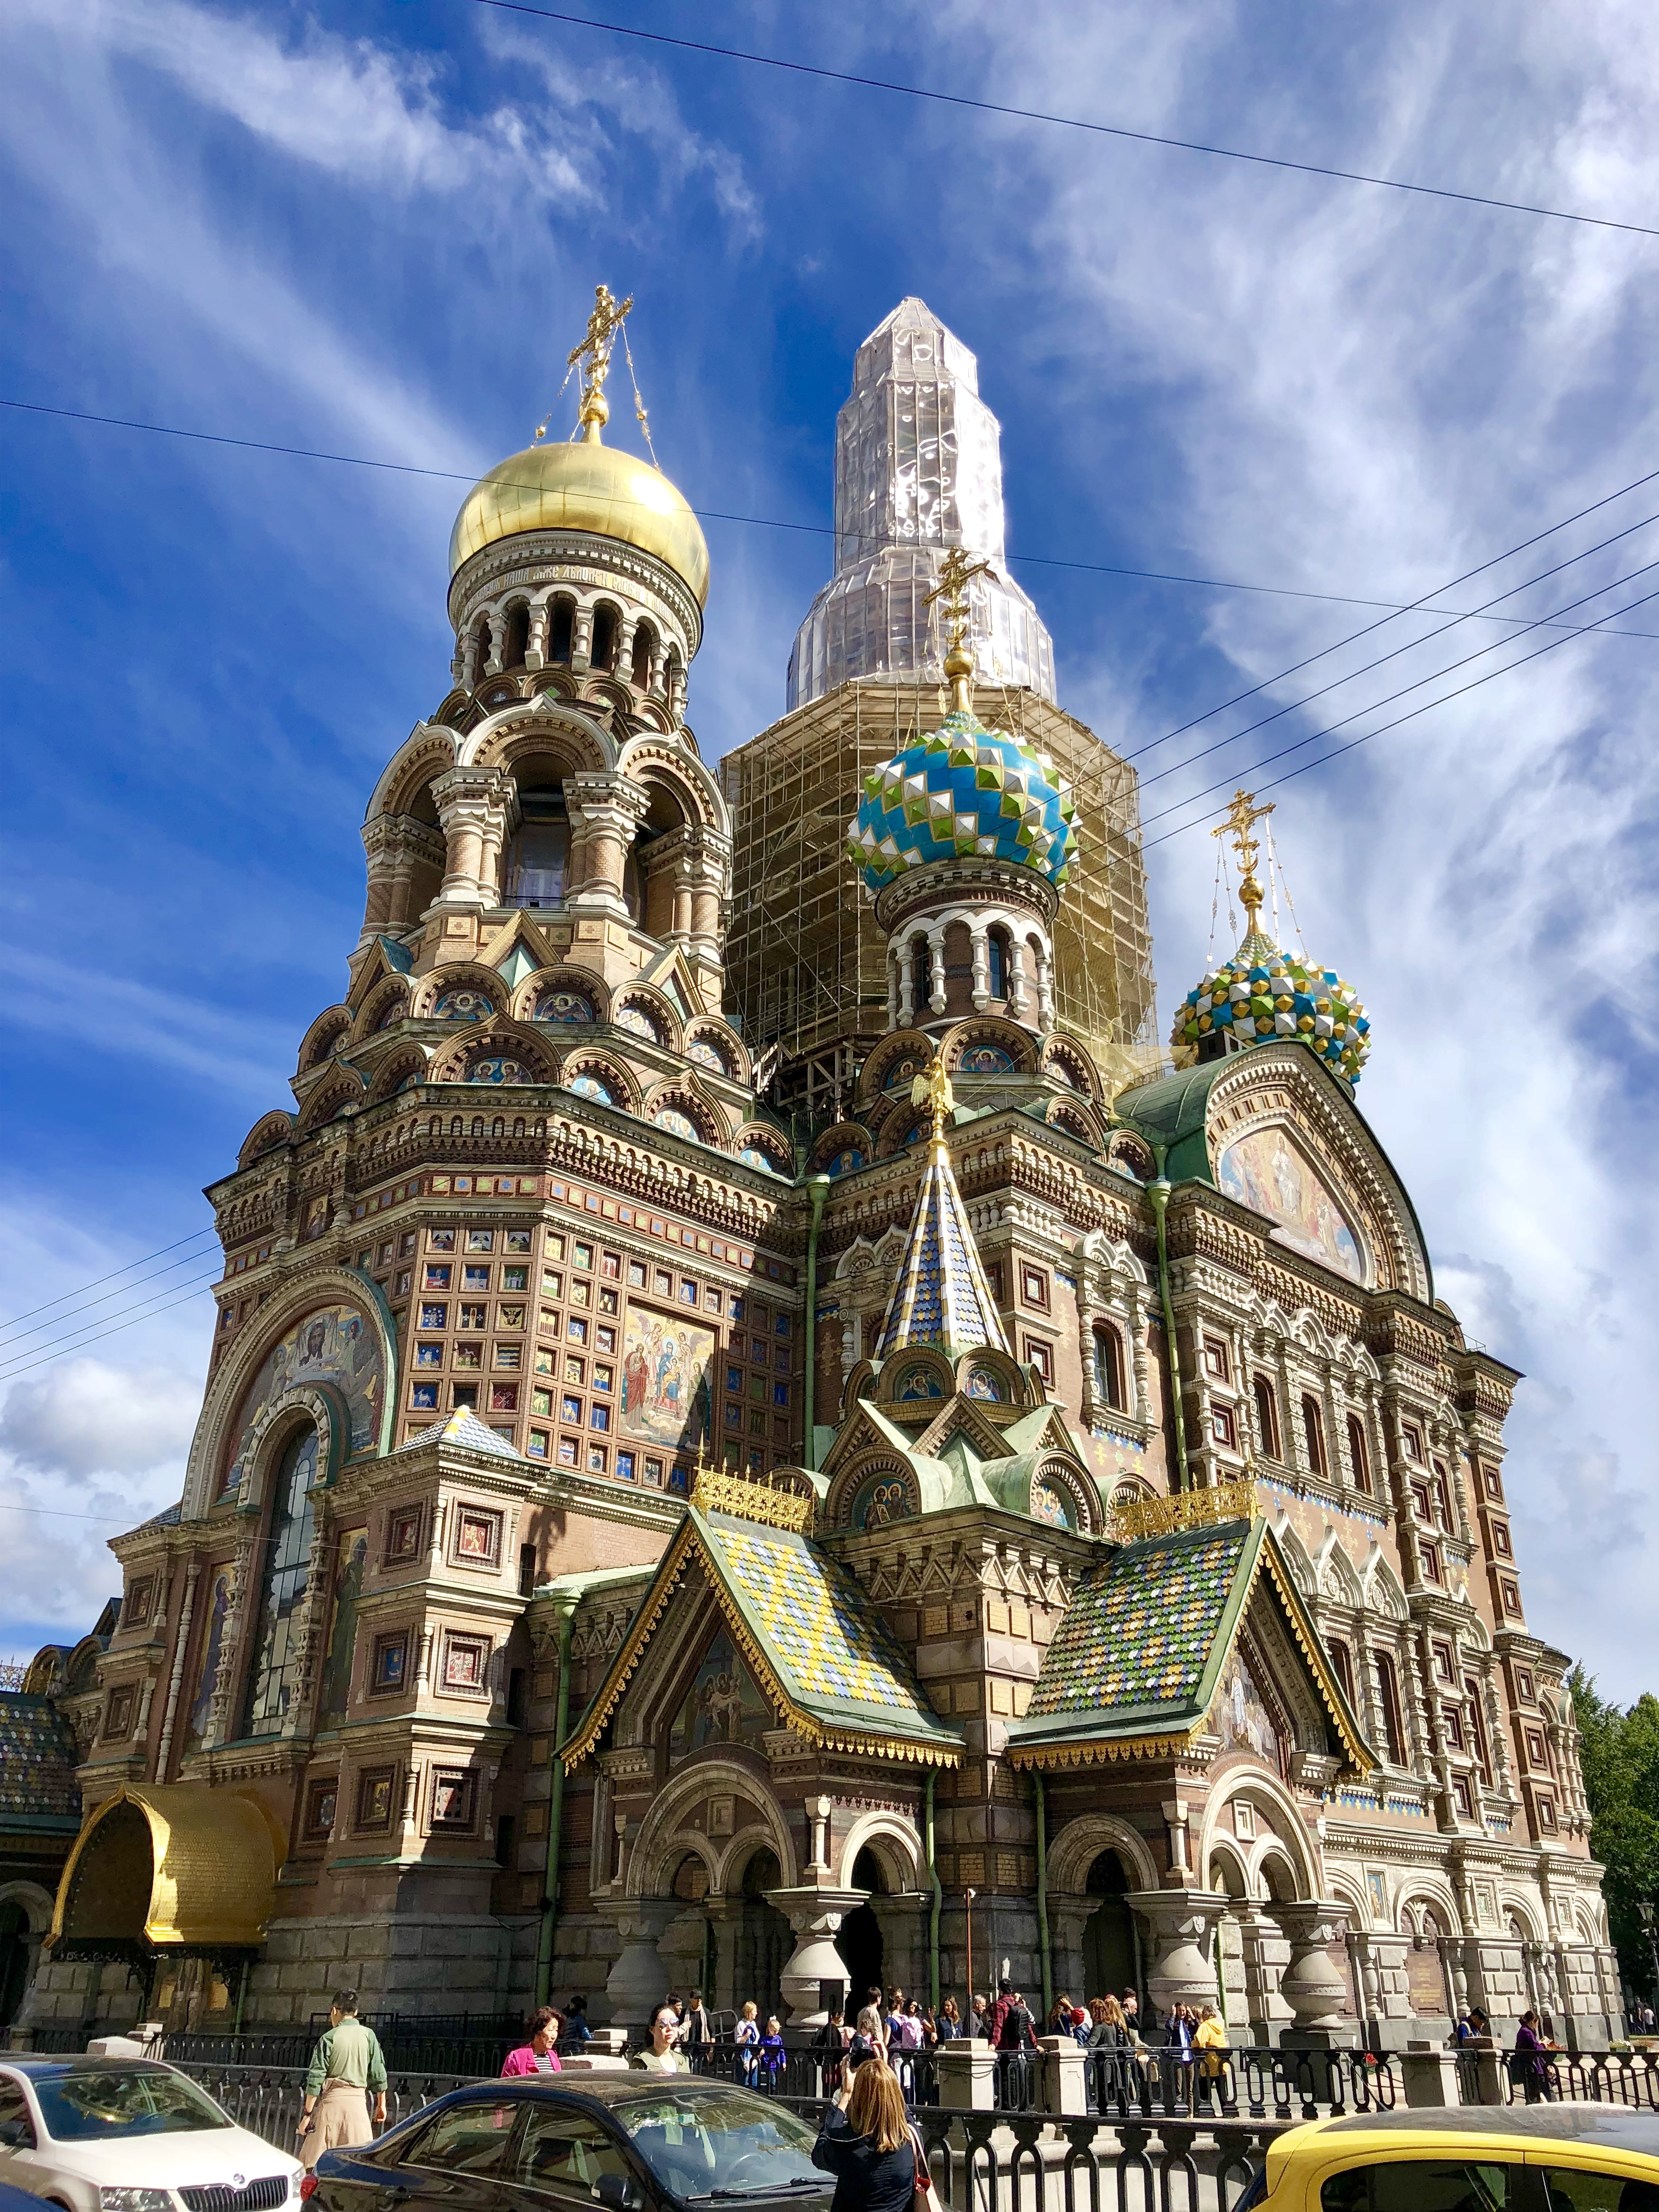 The Church of the Savior on Spilled Blood St Petersburg Russia